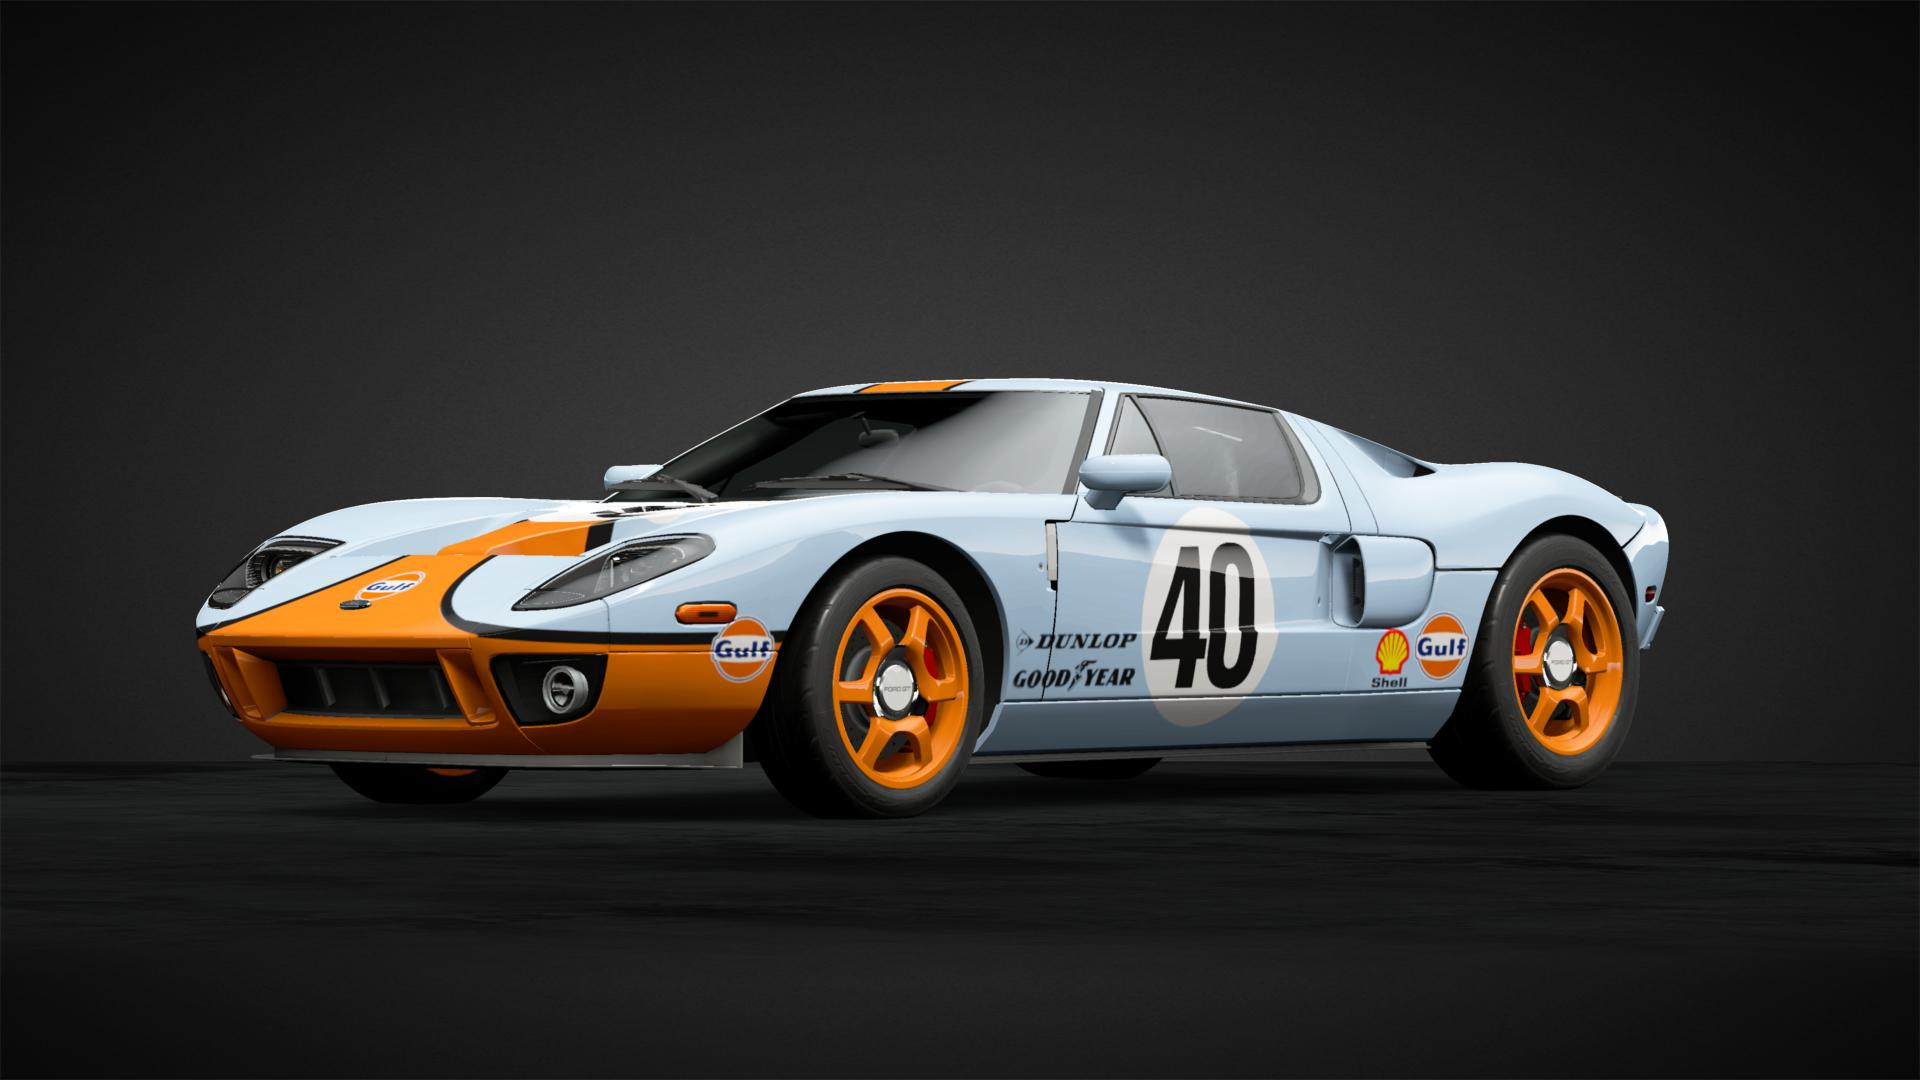 Ford Gt  Add To Collection  Car Livery Ford Gt Gulf Livery